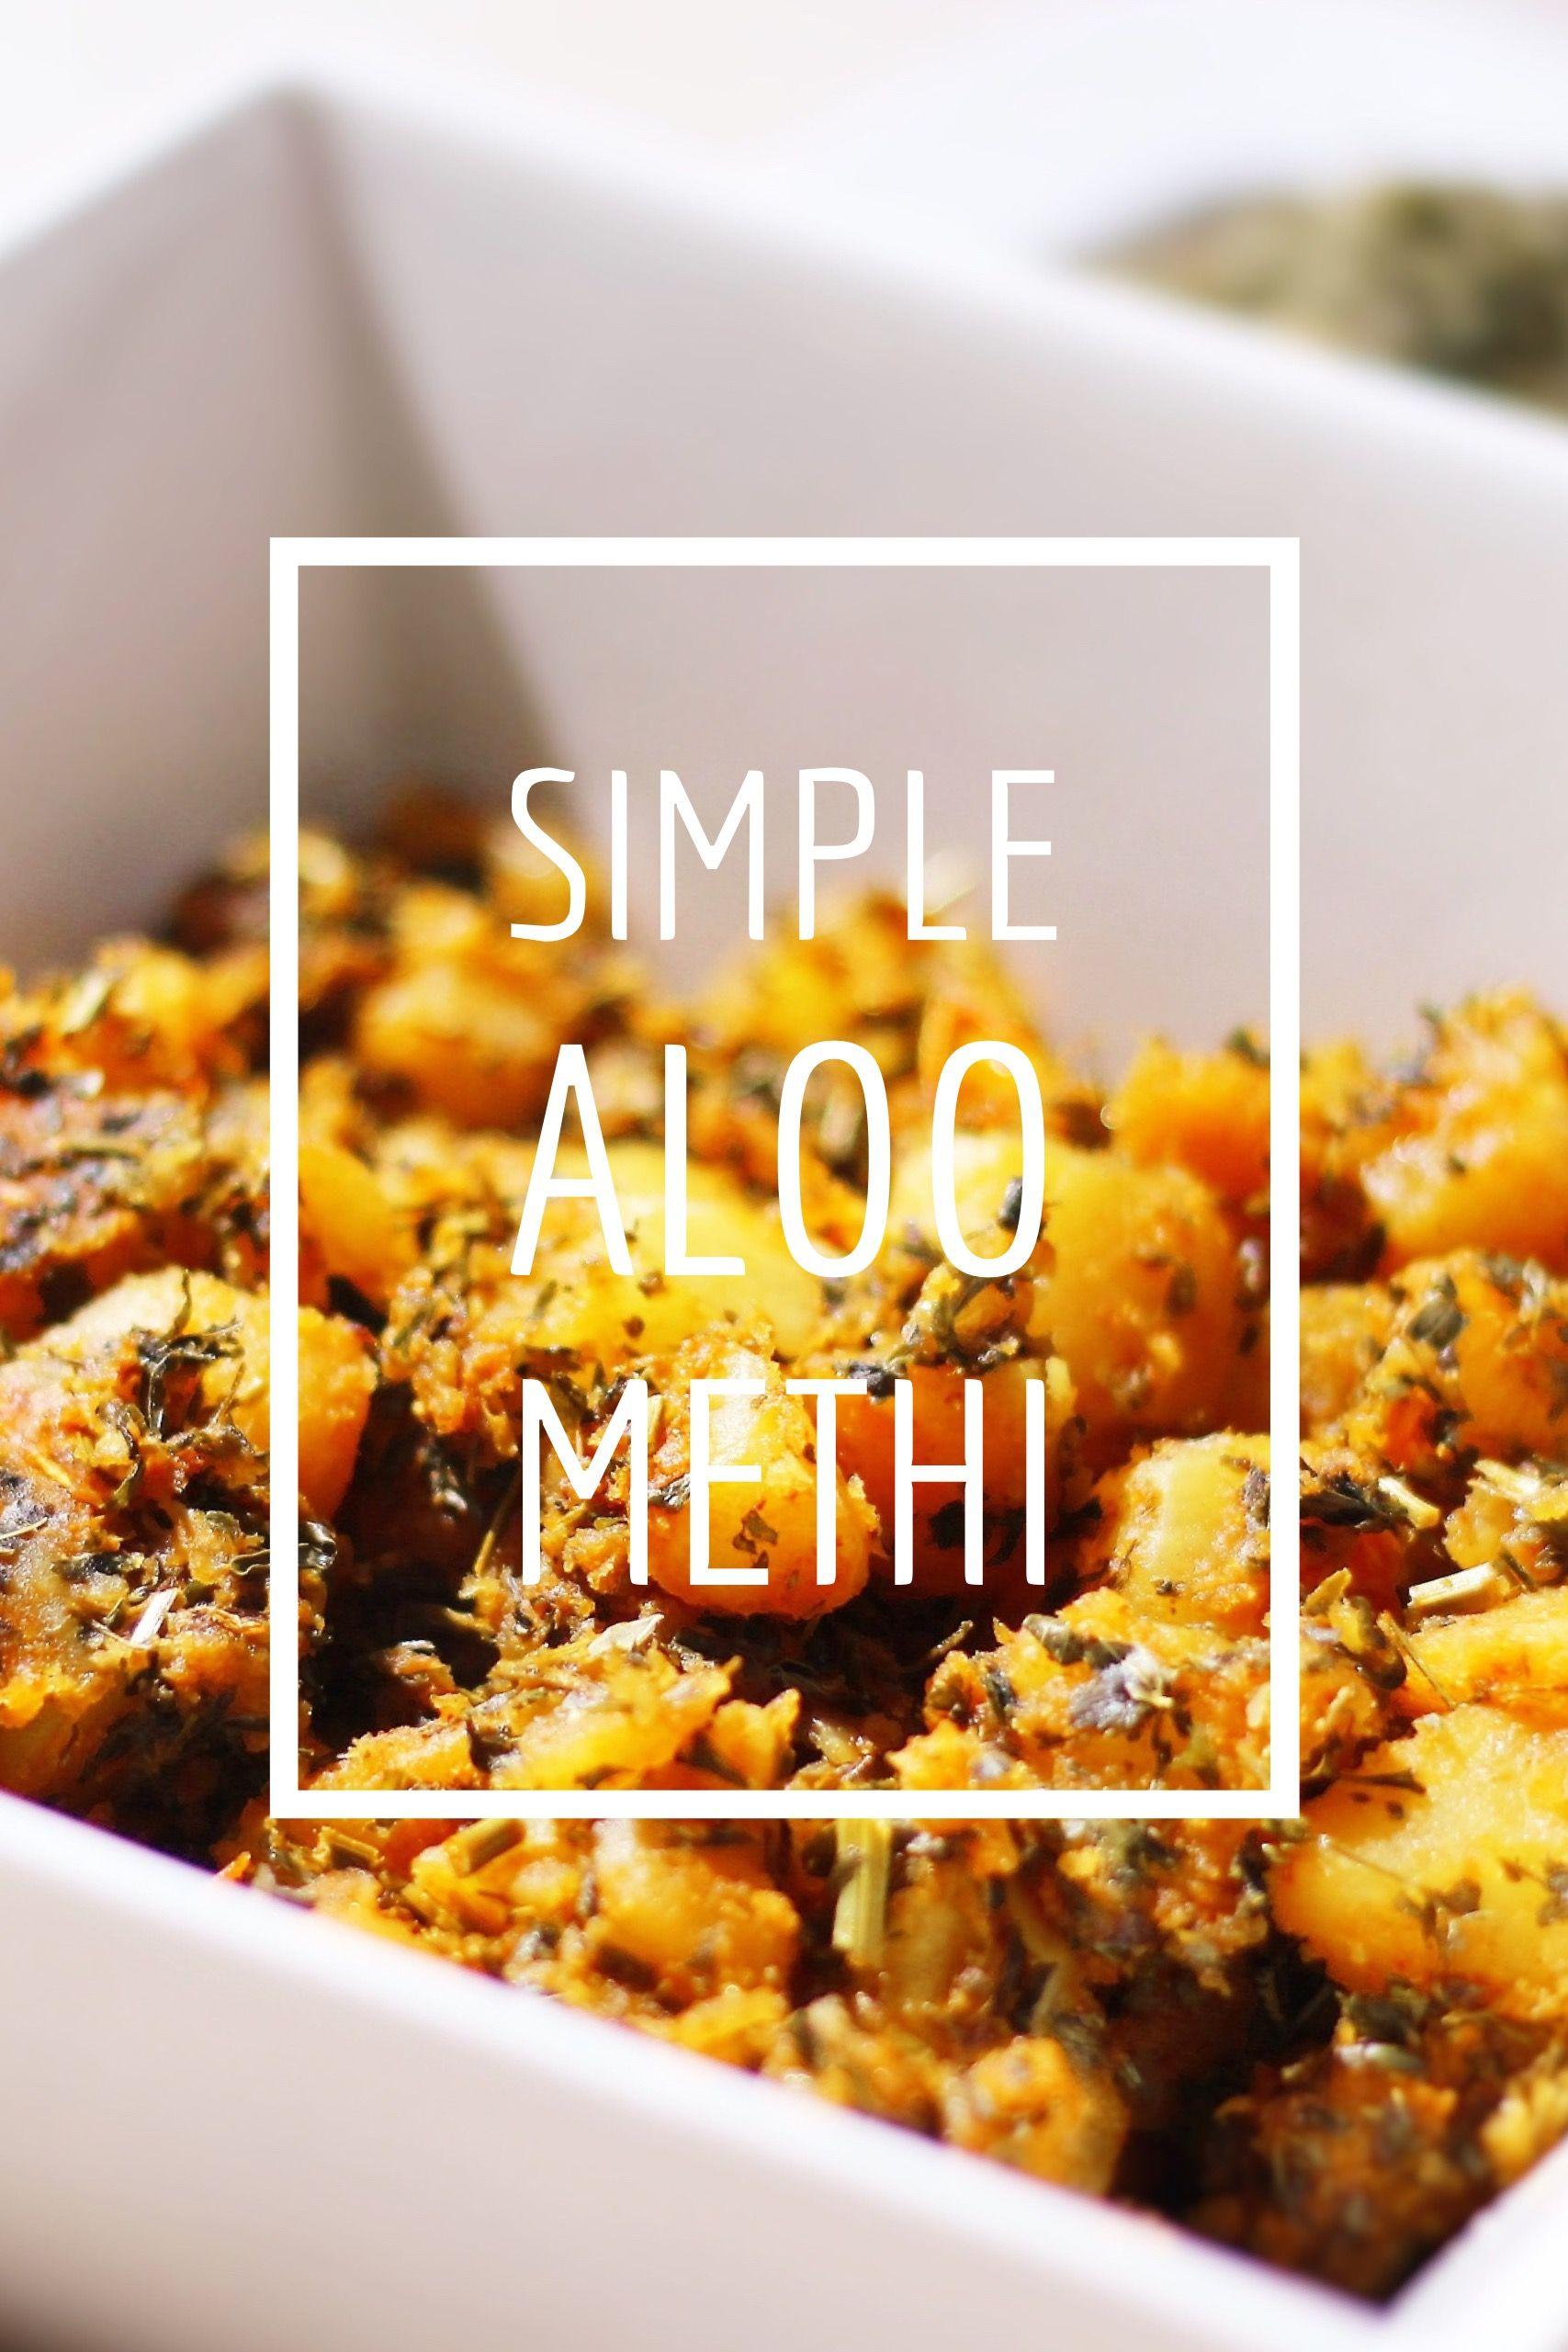 Simple aloo methi recipe in my youtube channel link in my bio simple aloo methi recipe in my youtube channel link in my bio forumfinder Images